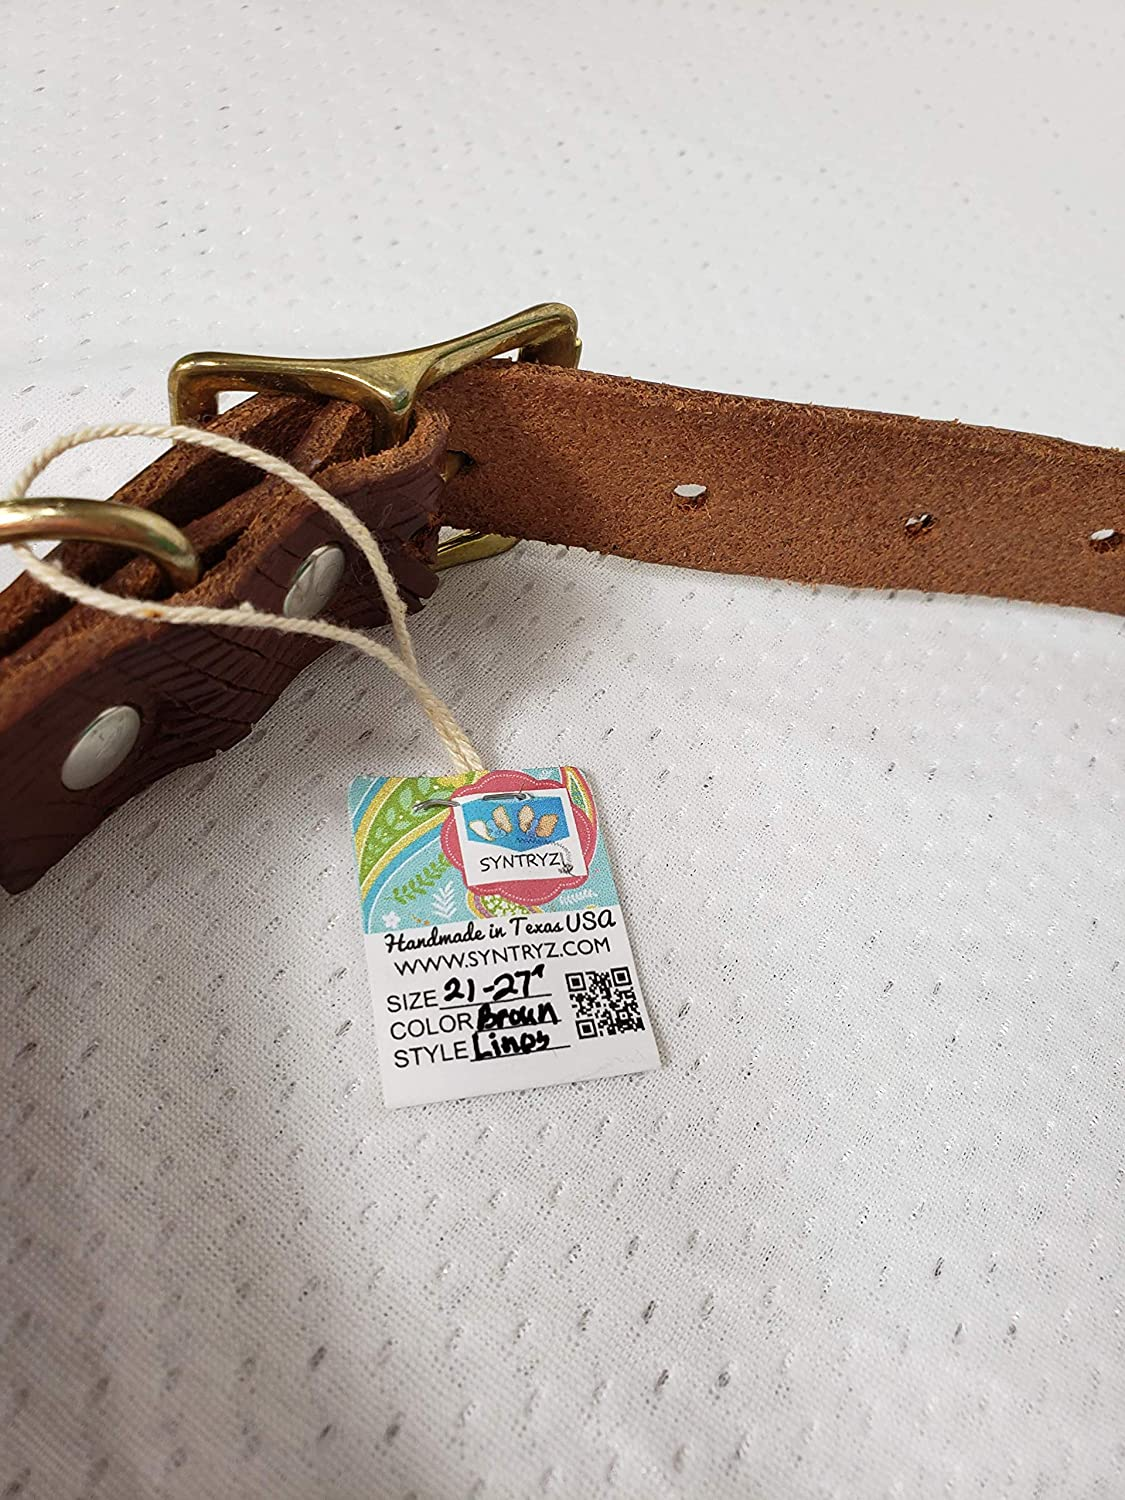 Handwoven and Authentic Leather Dog  Pet Leashes Multicolors and Sizes